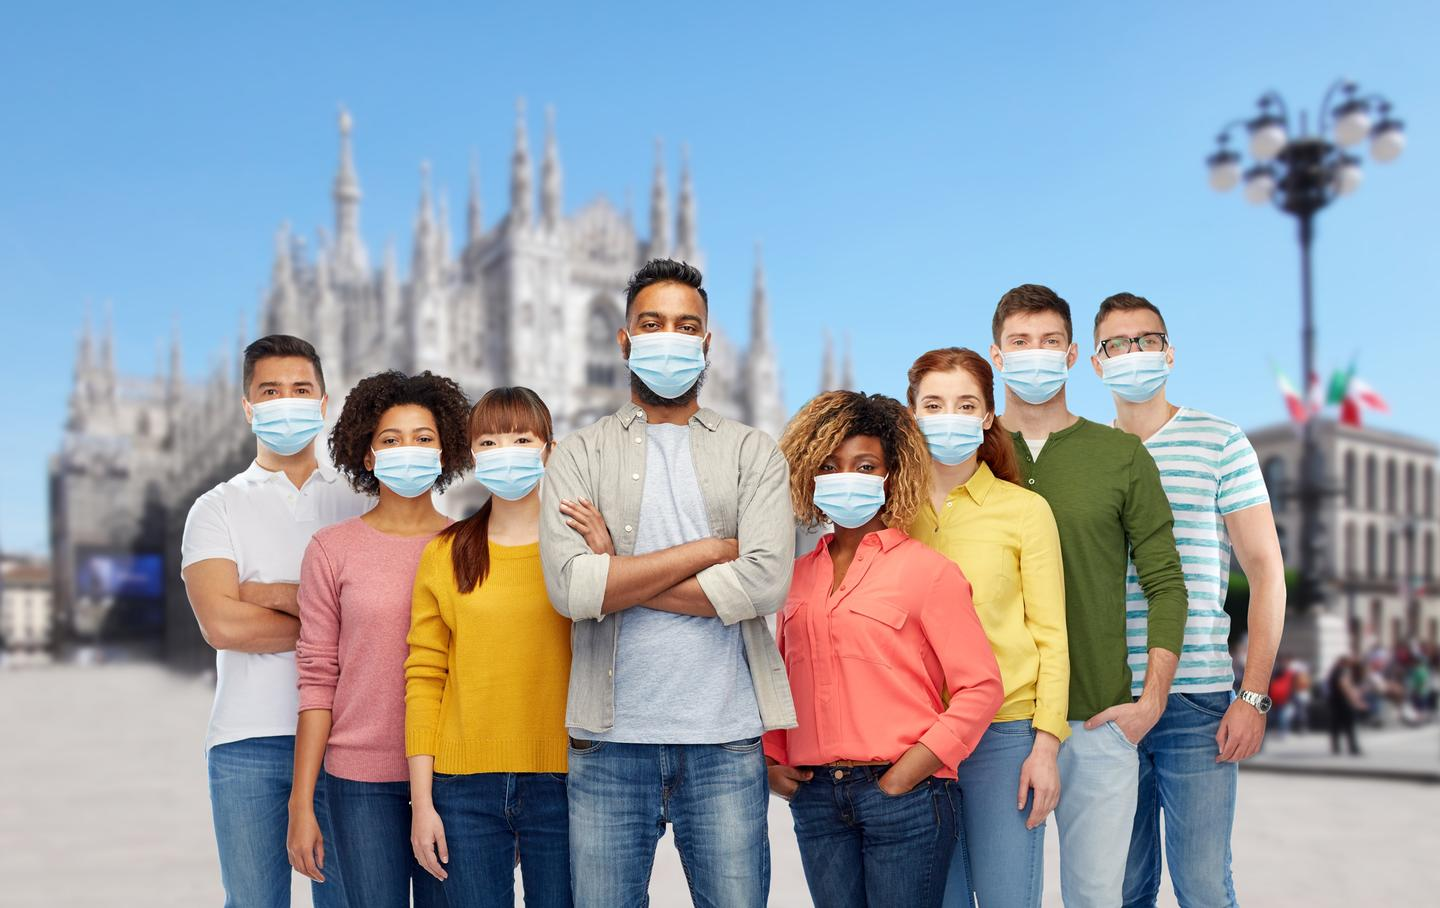 An editorial from three Cambridge University researchers argues any downsides from mass mask wearing are outweighed by the potential benefits